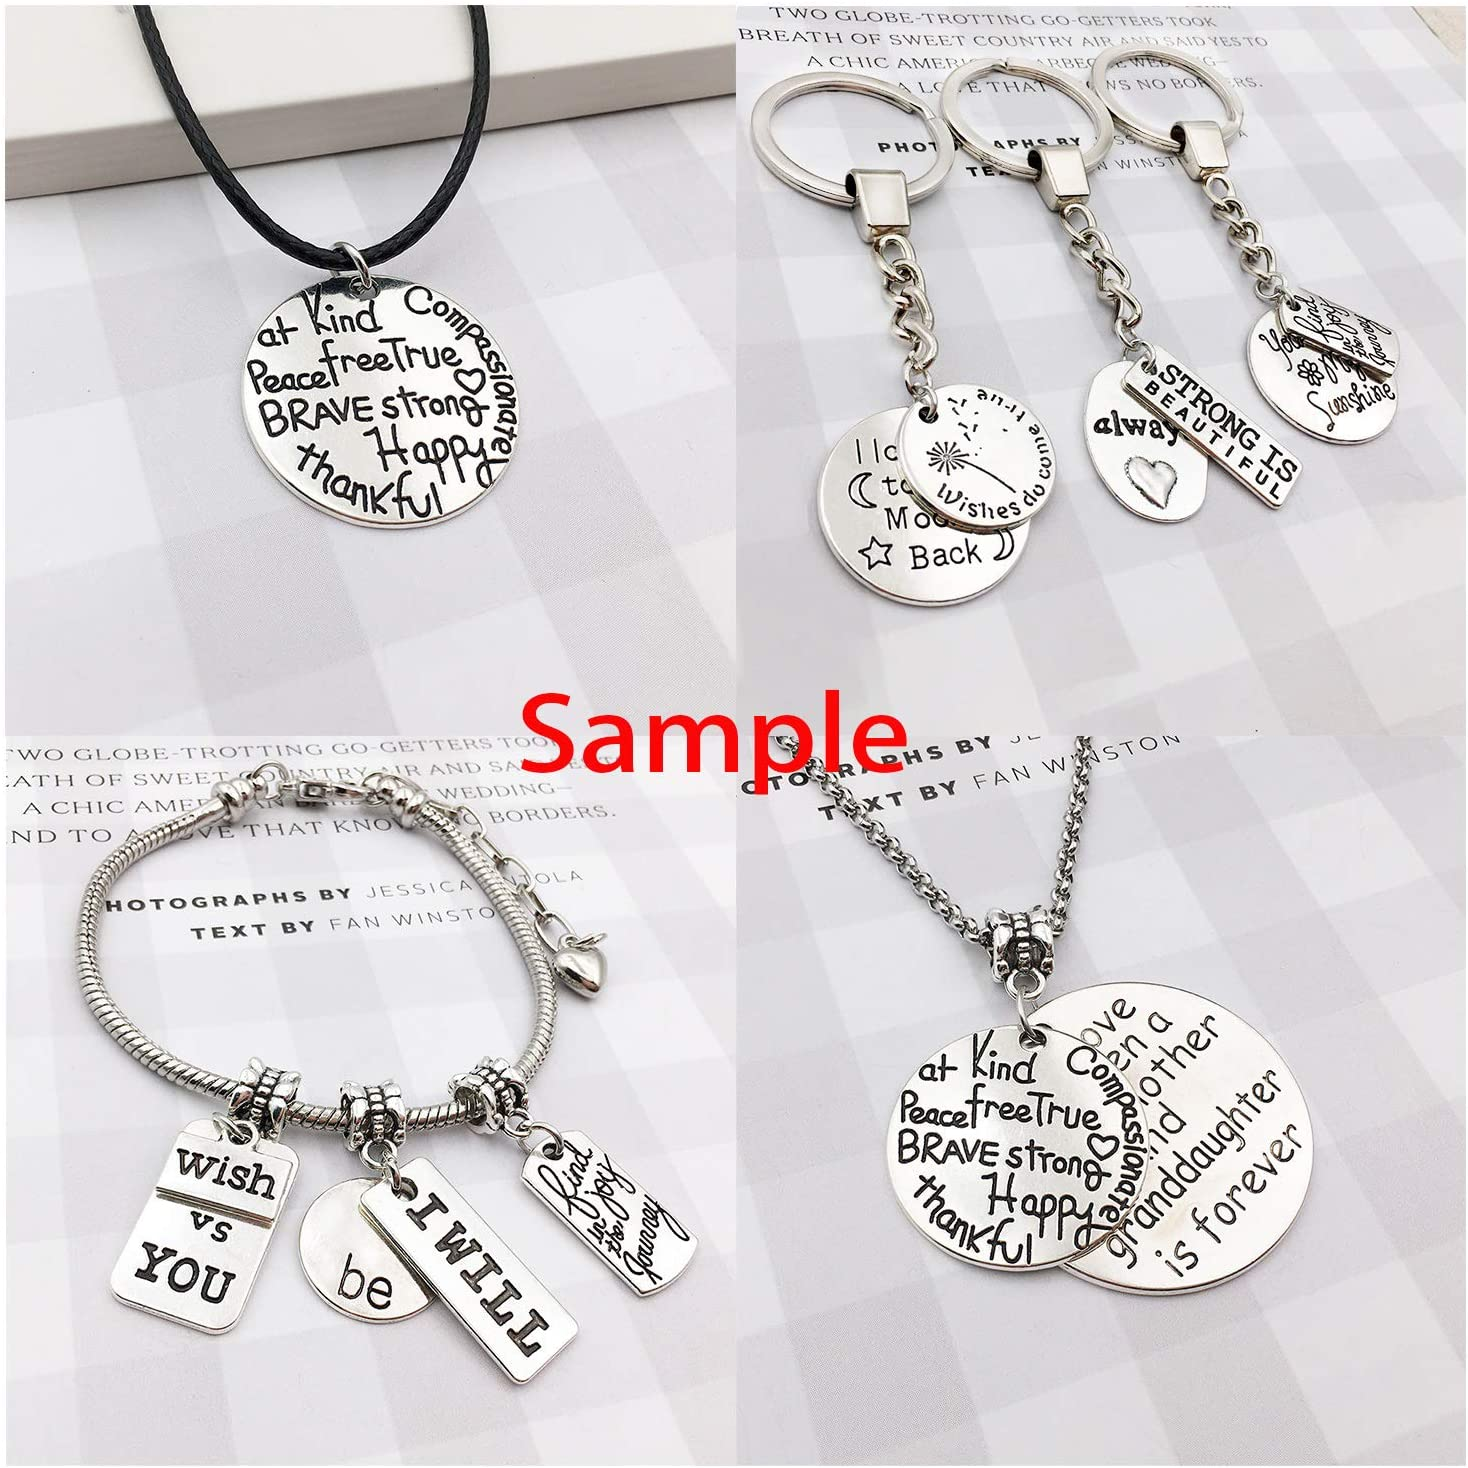 Pack of 10 Multi-style Vehicles Charms Necklace Pendant DIY Jewellery Making